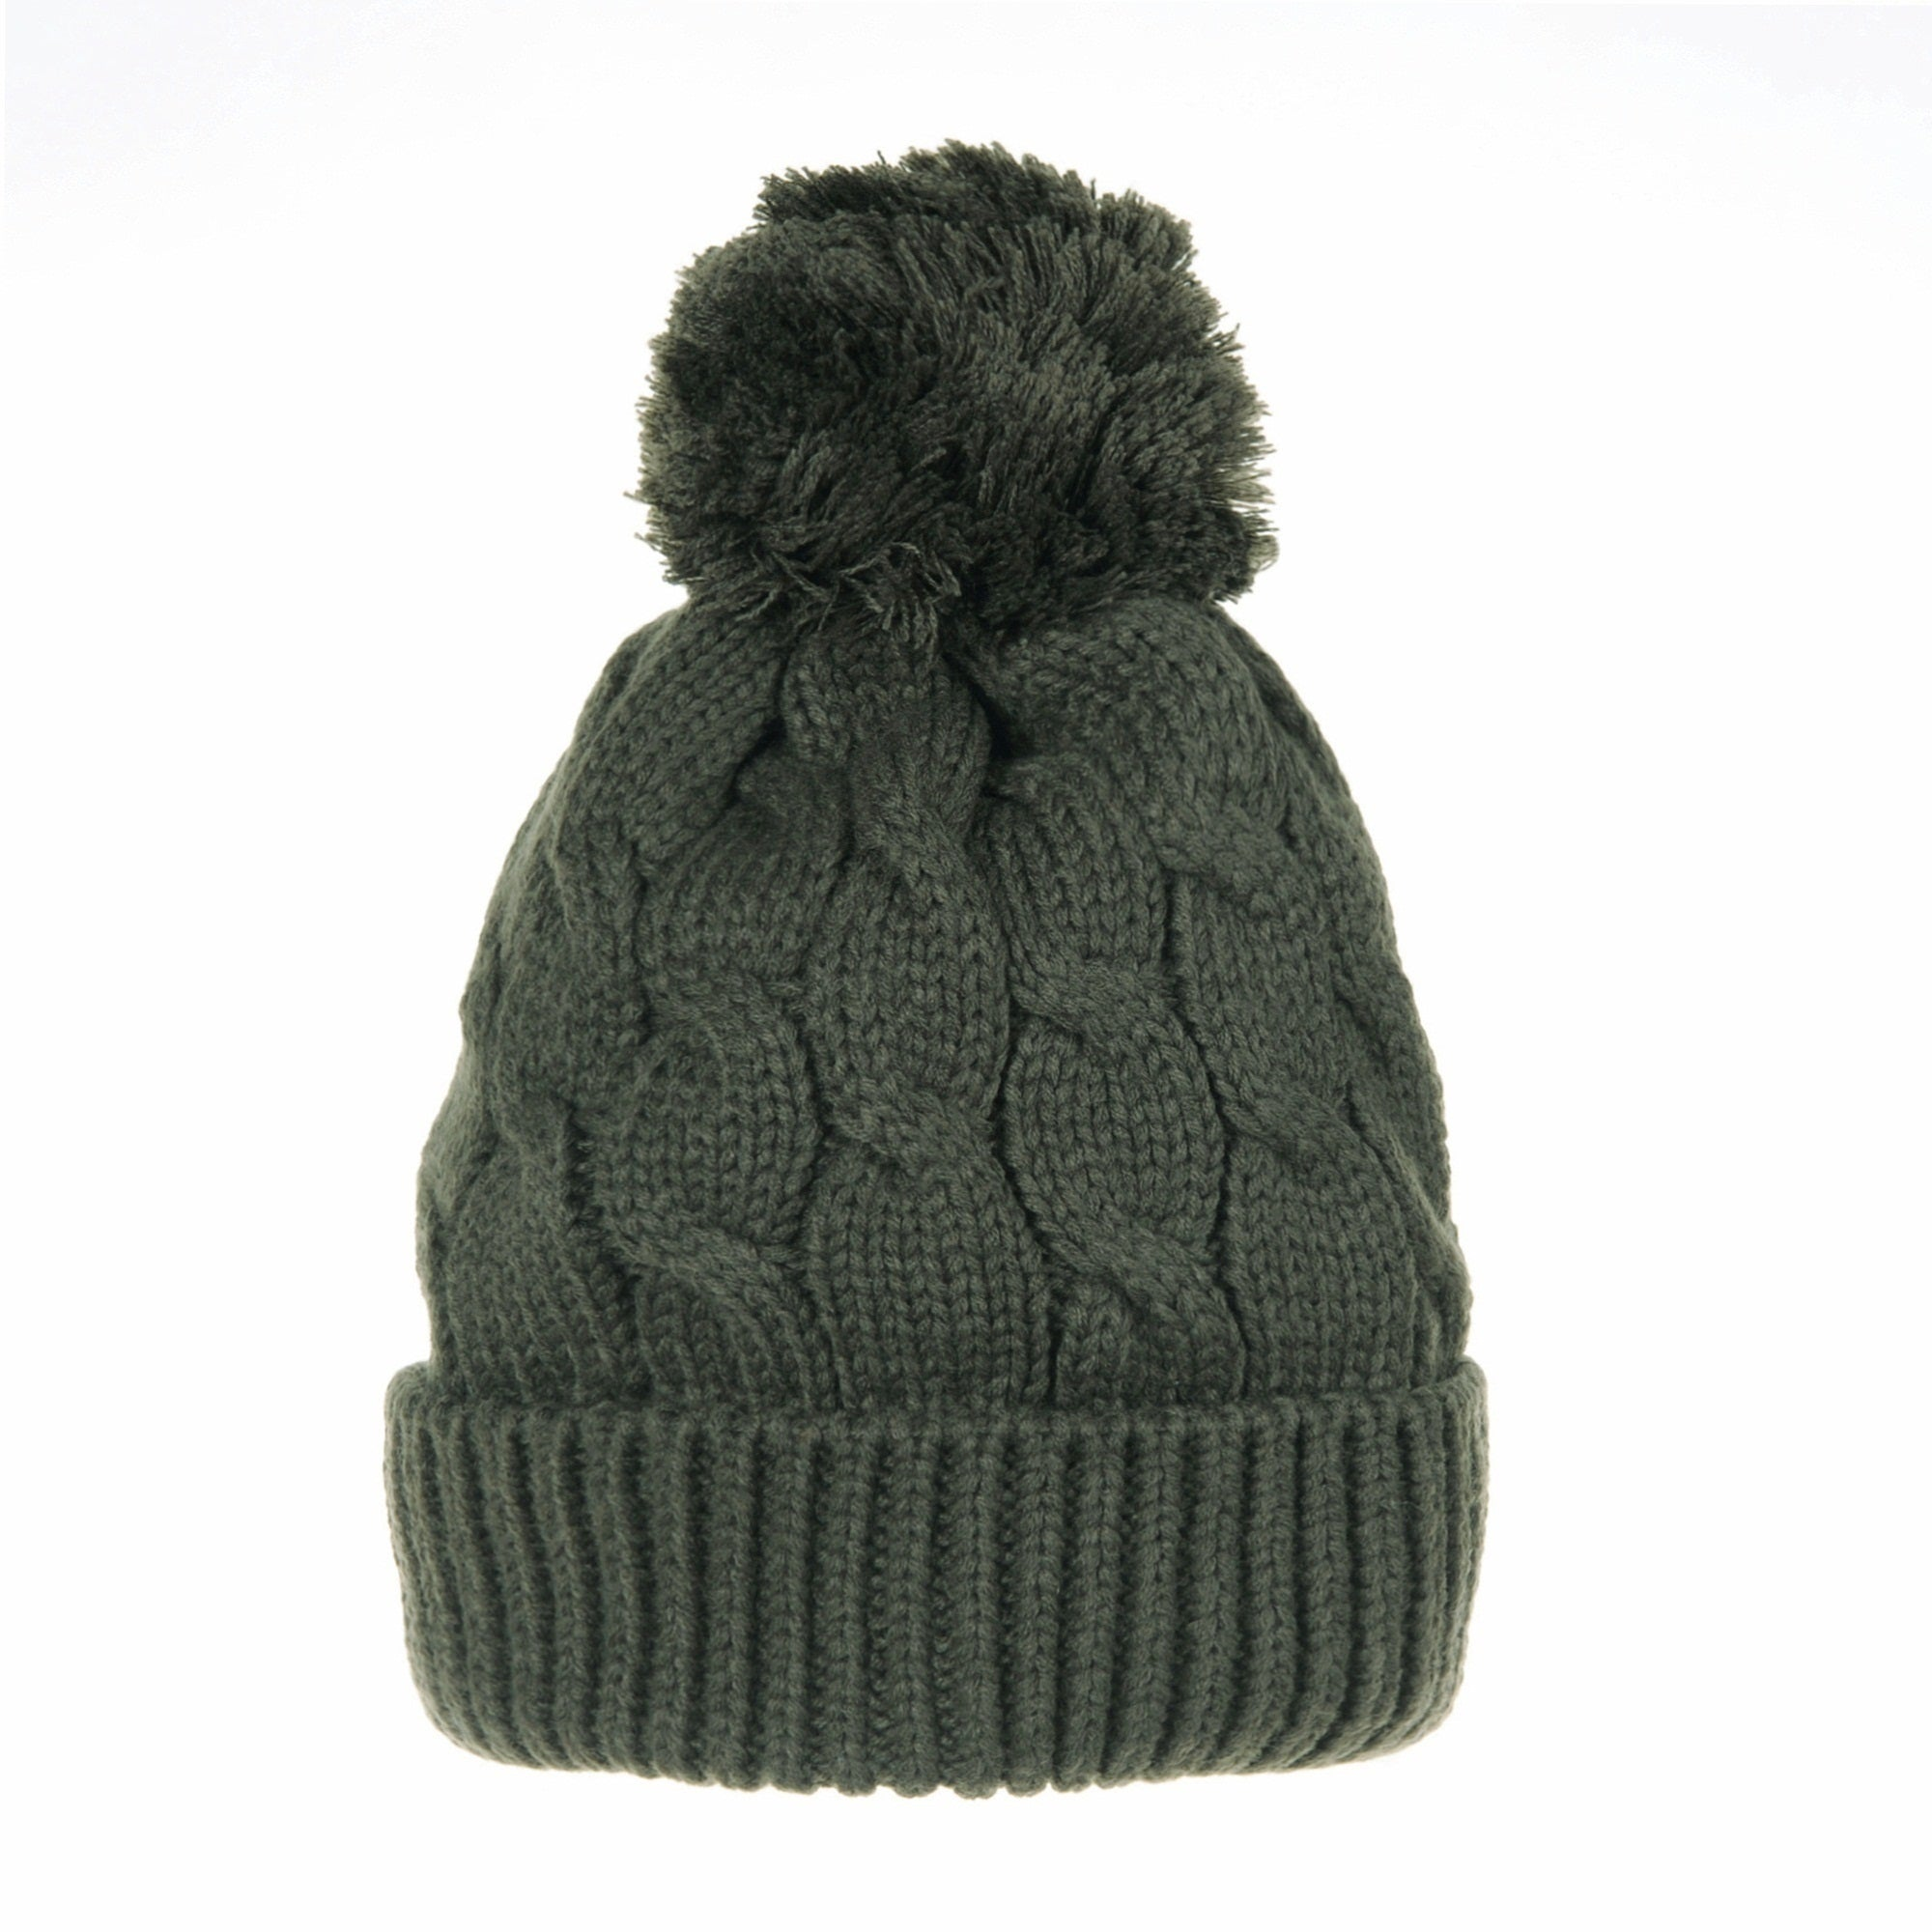 Knitted Twisted Cable Bobble Pom Beanie Hat Slouchy